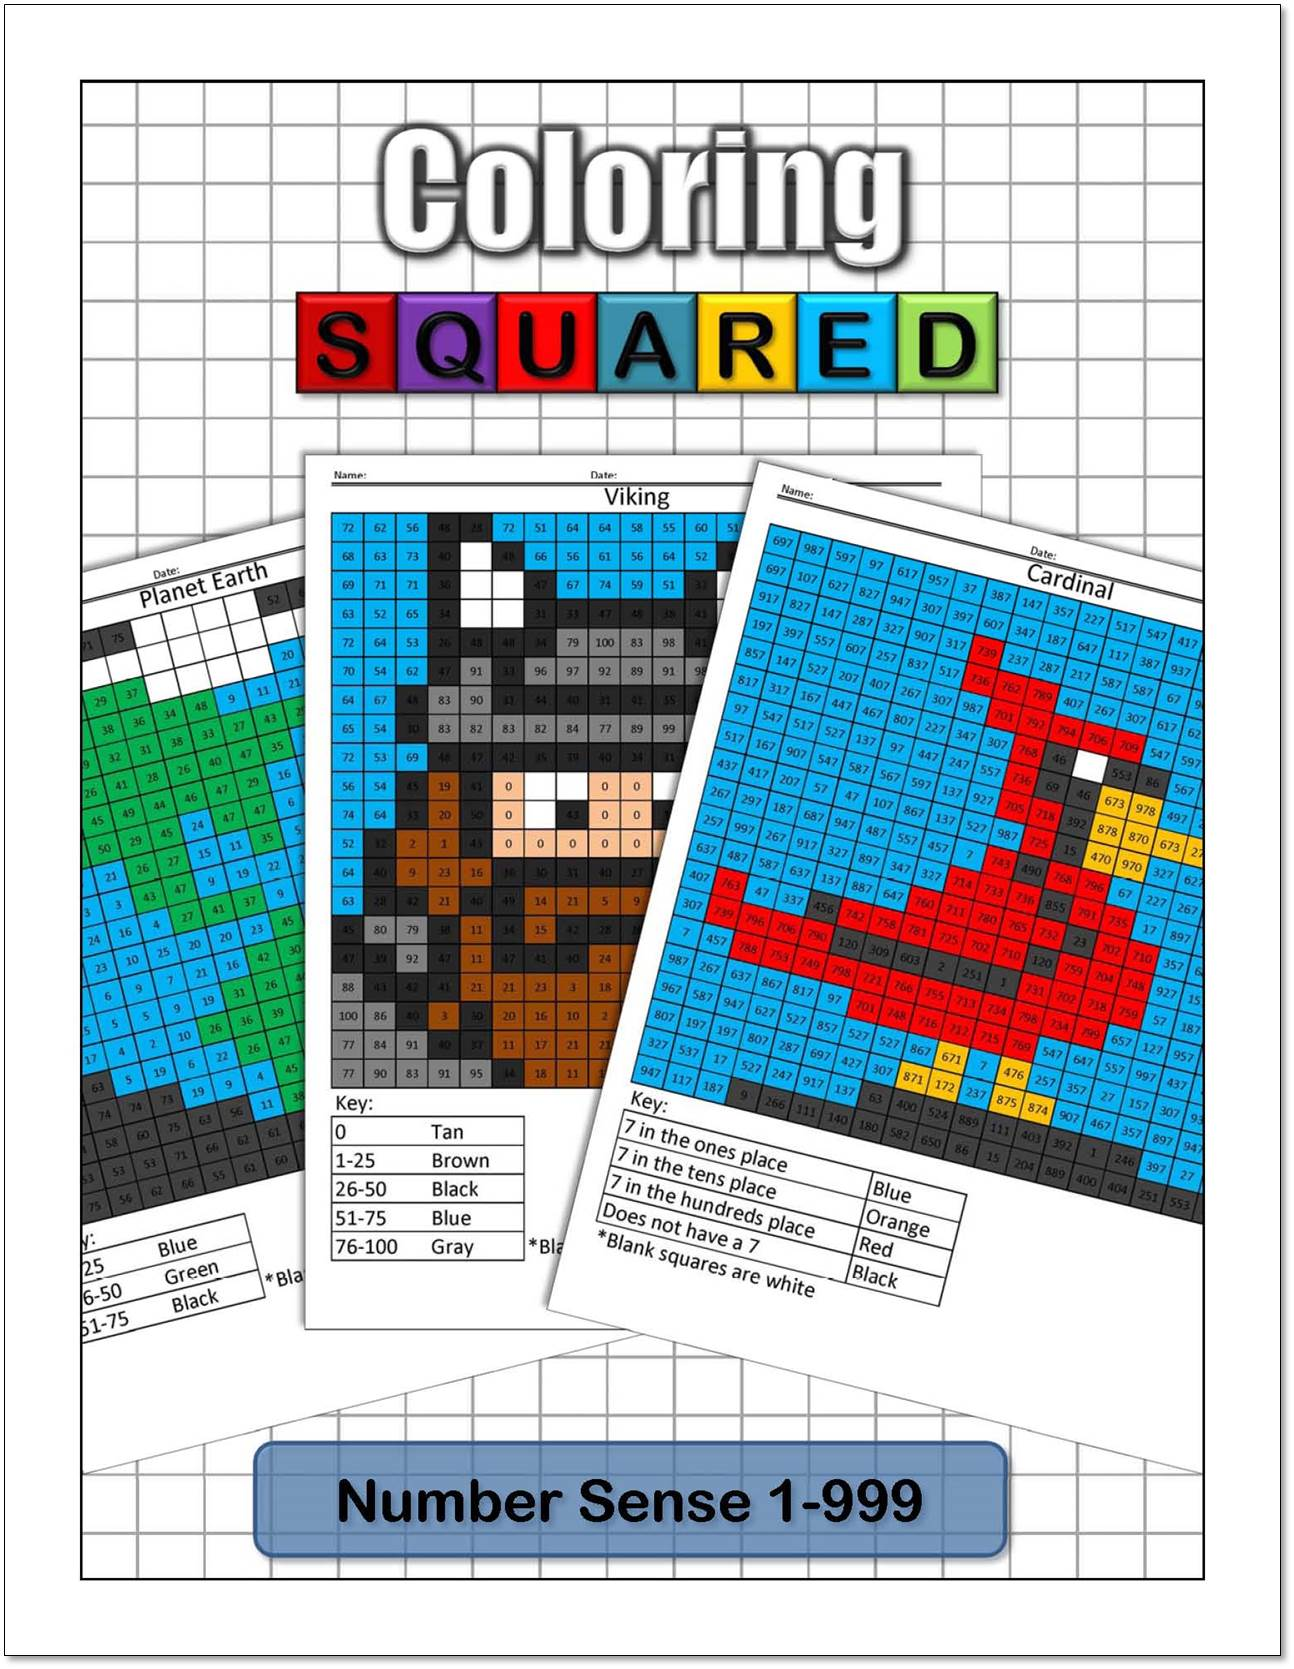 Place Value Coloring Pages - Coloring Squared